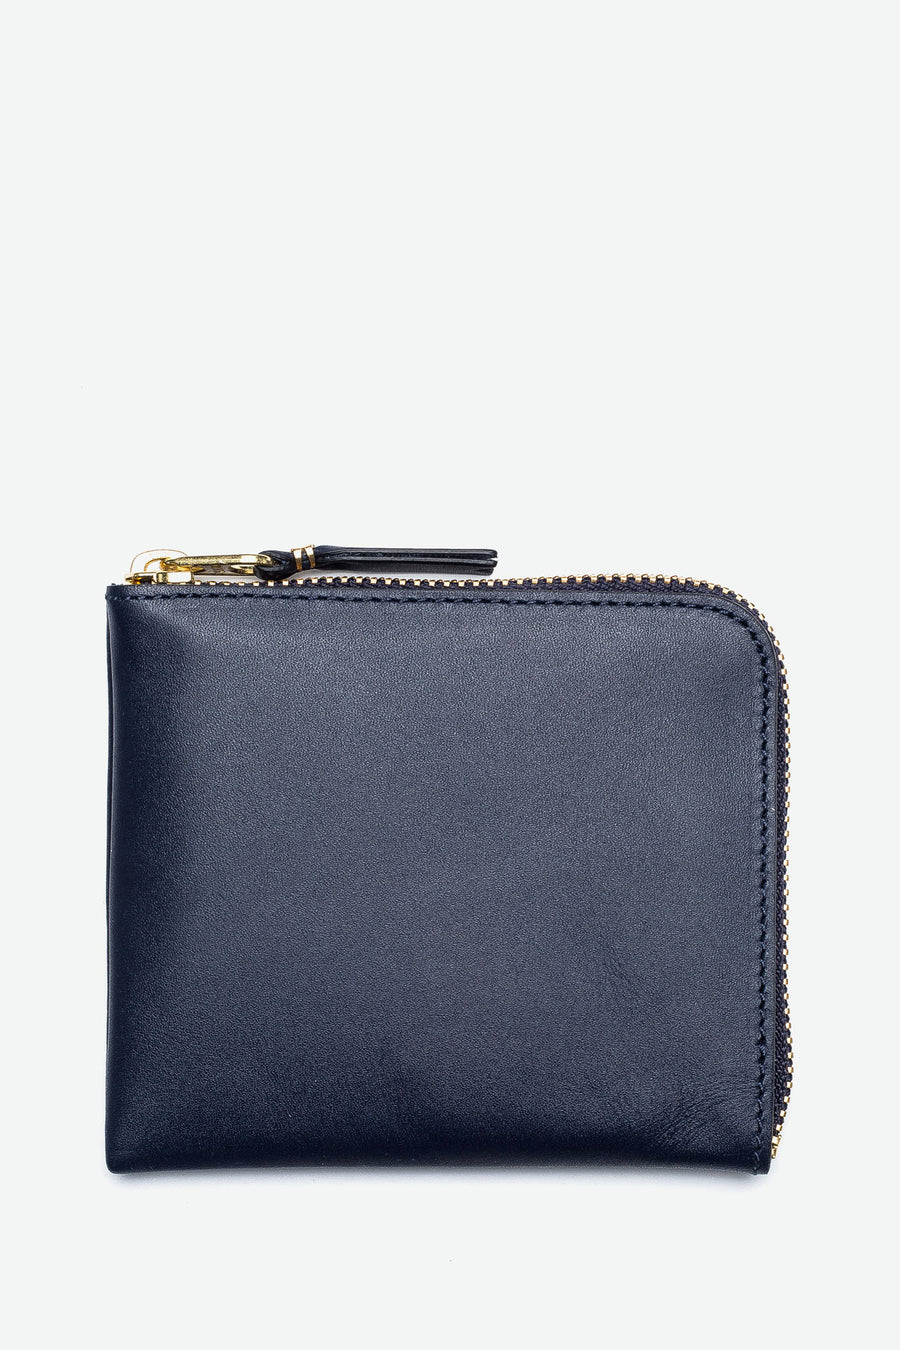 2-Sided Zip Wallet Navy